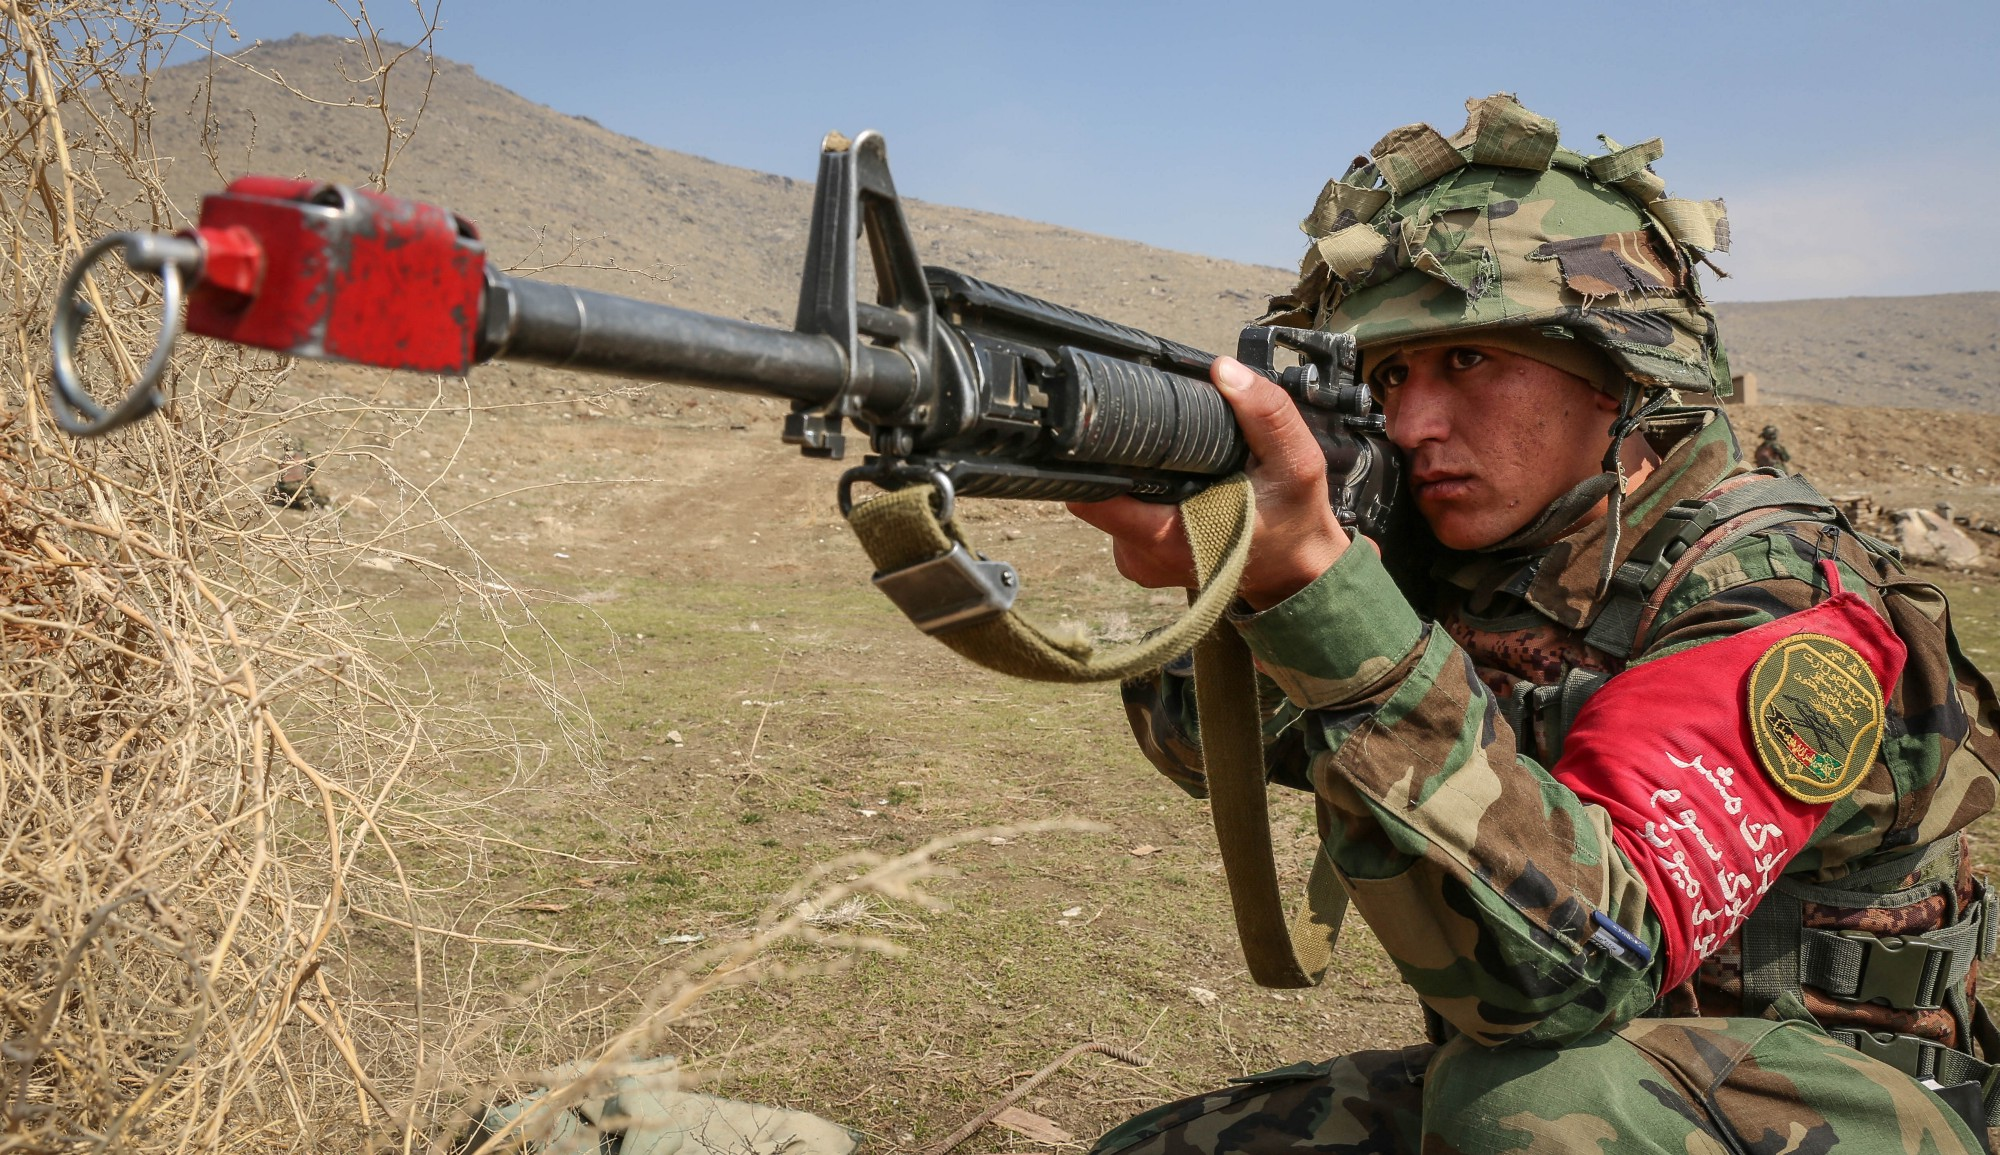 Members of the Afghan National Army take part in an exercise on the ANAOA plains in Kabul.